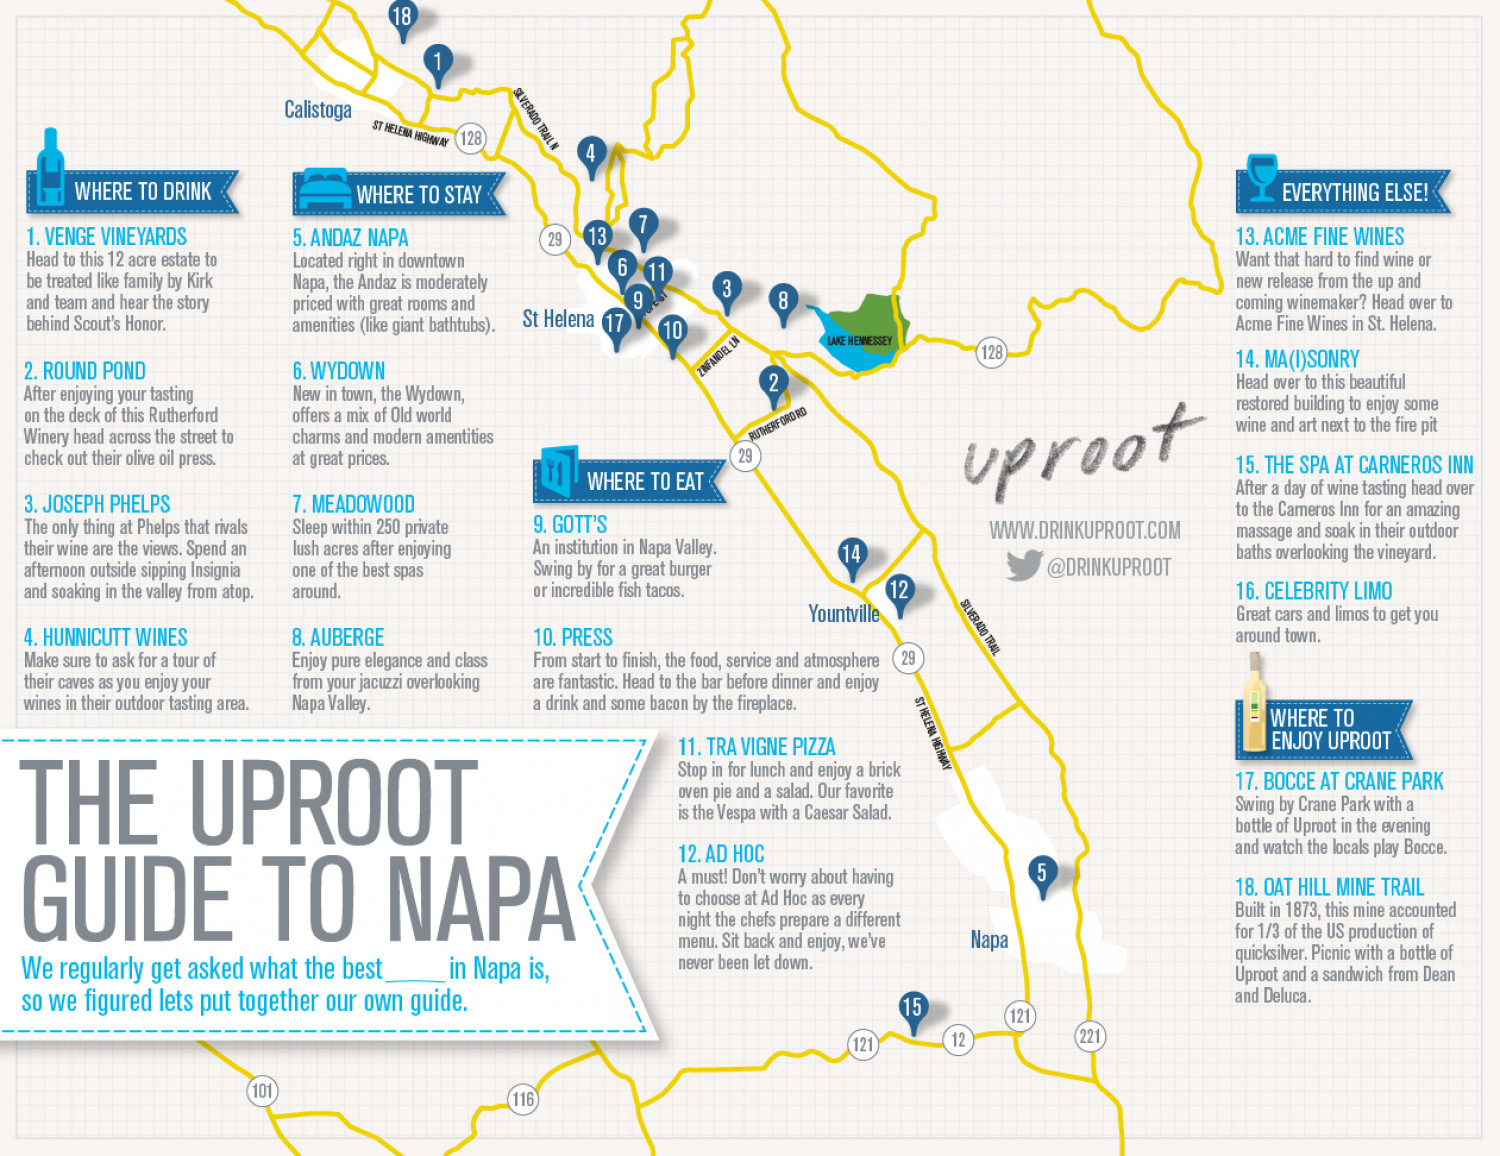 The Uproot Guide to Napa Infographic